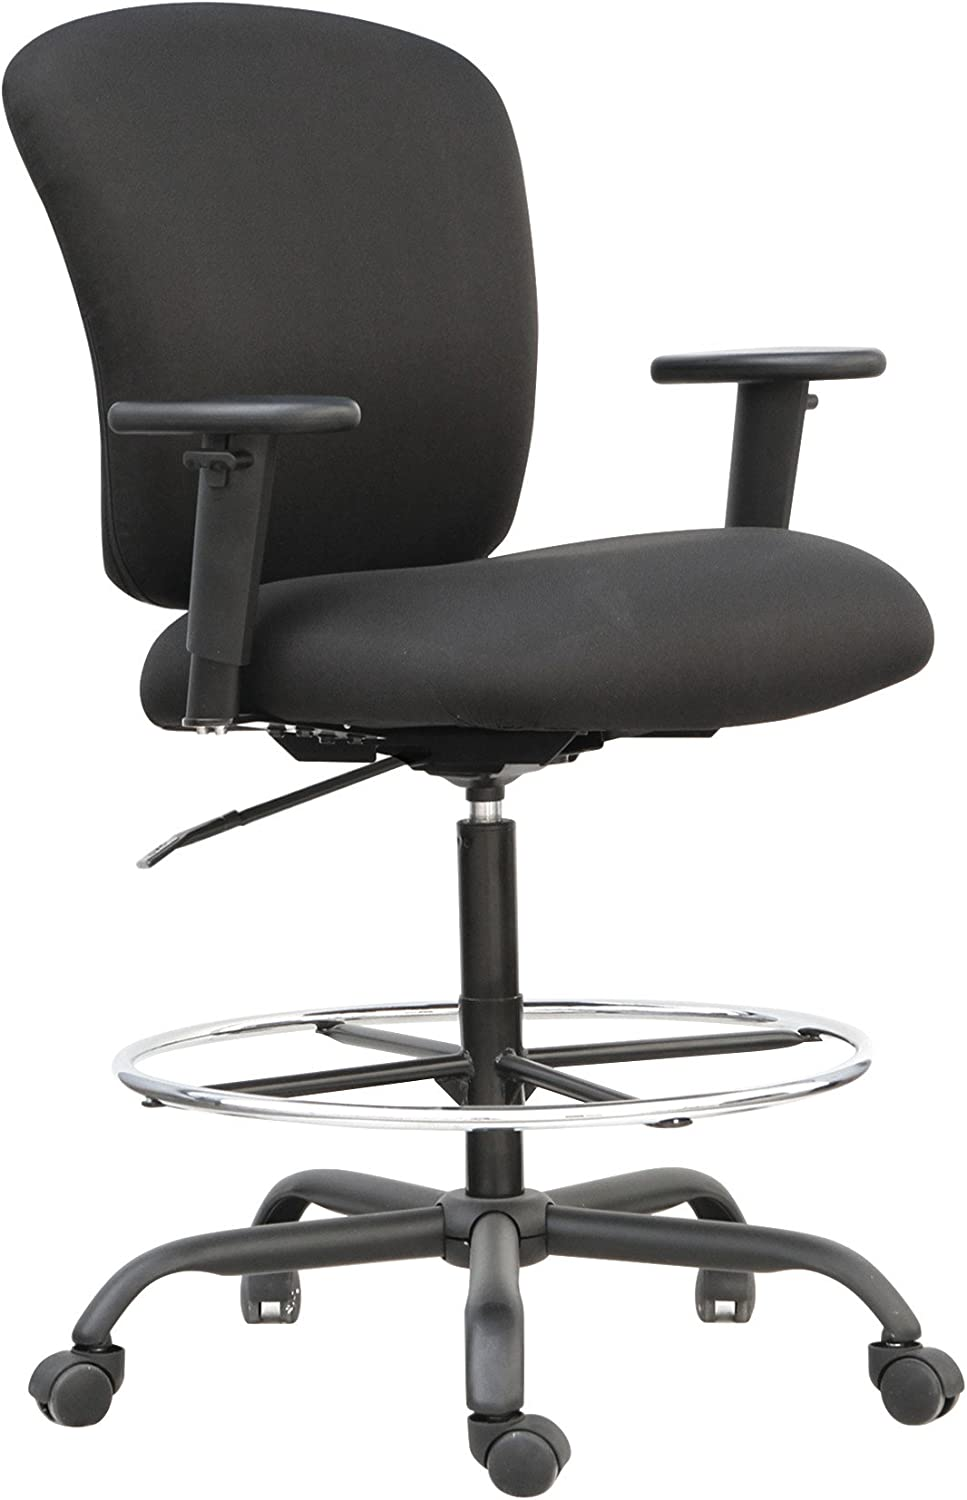 Fine Mod Imports Comfy Mid Back Office Chair, Red